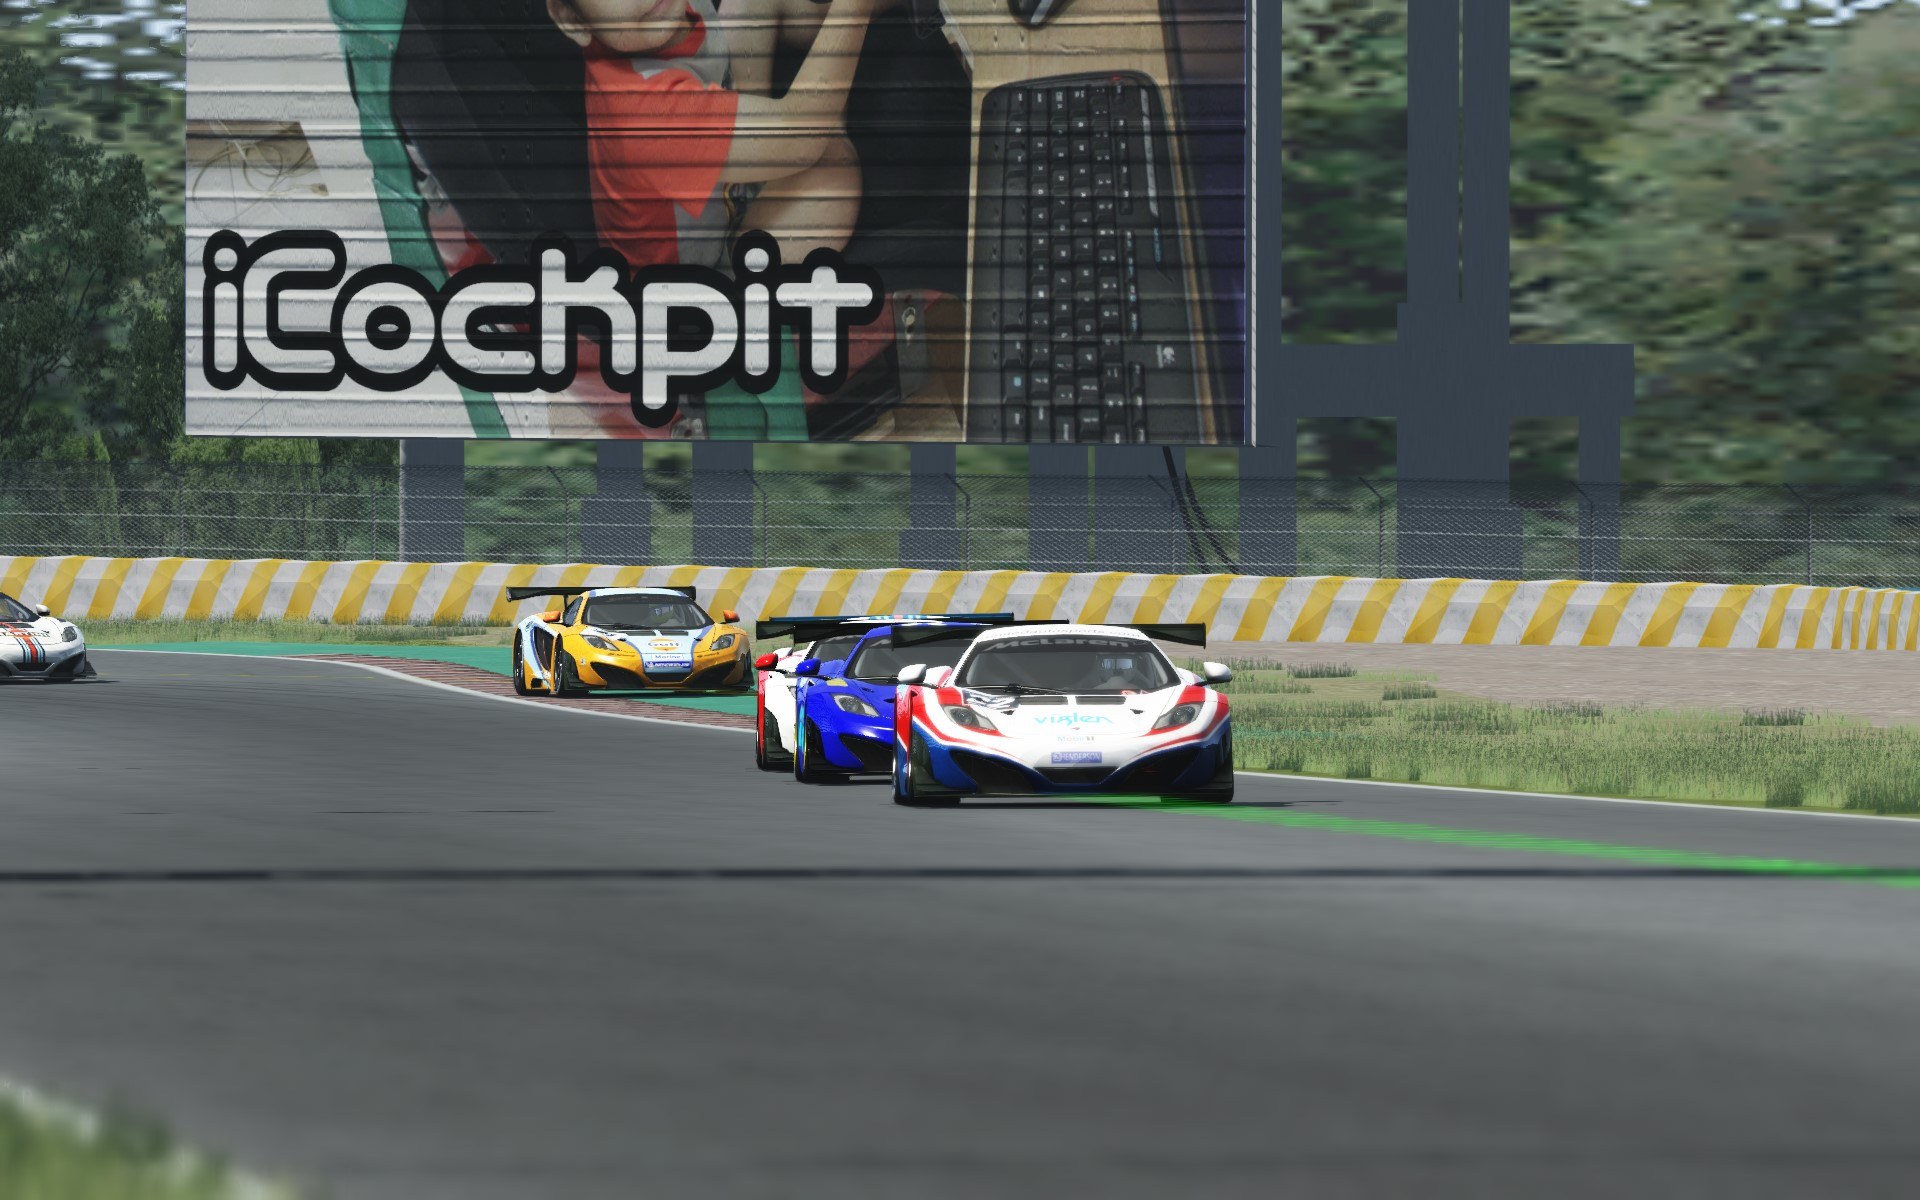 Screenshot_mclaren_mp412c_gt3_sentul_circuit_30-7-115-12-44-12.jpg